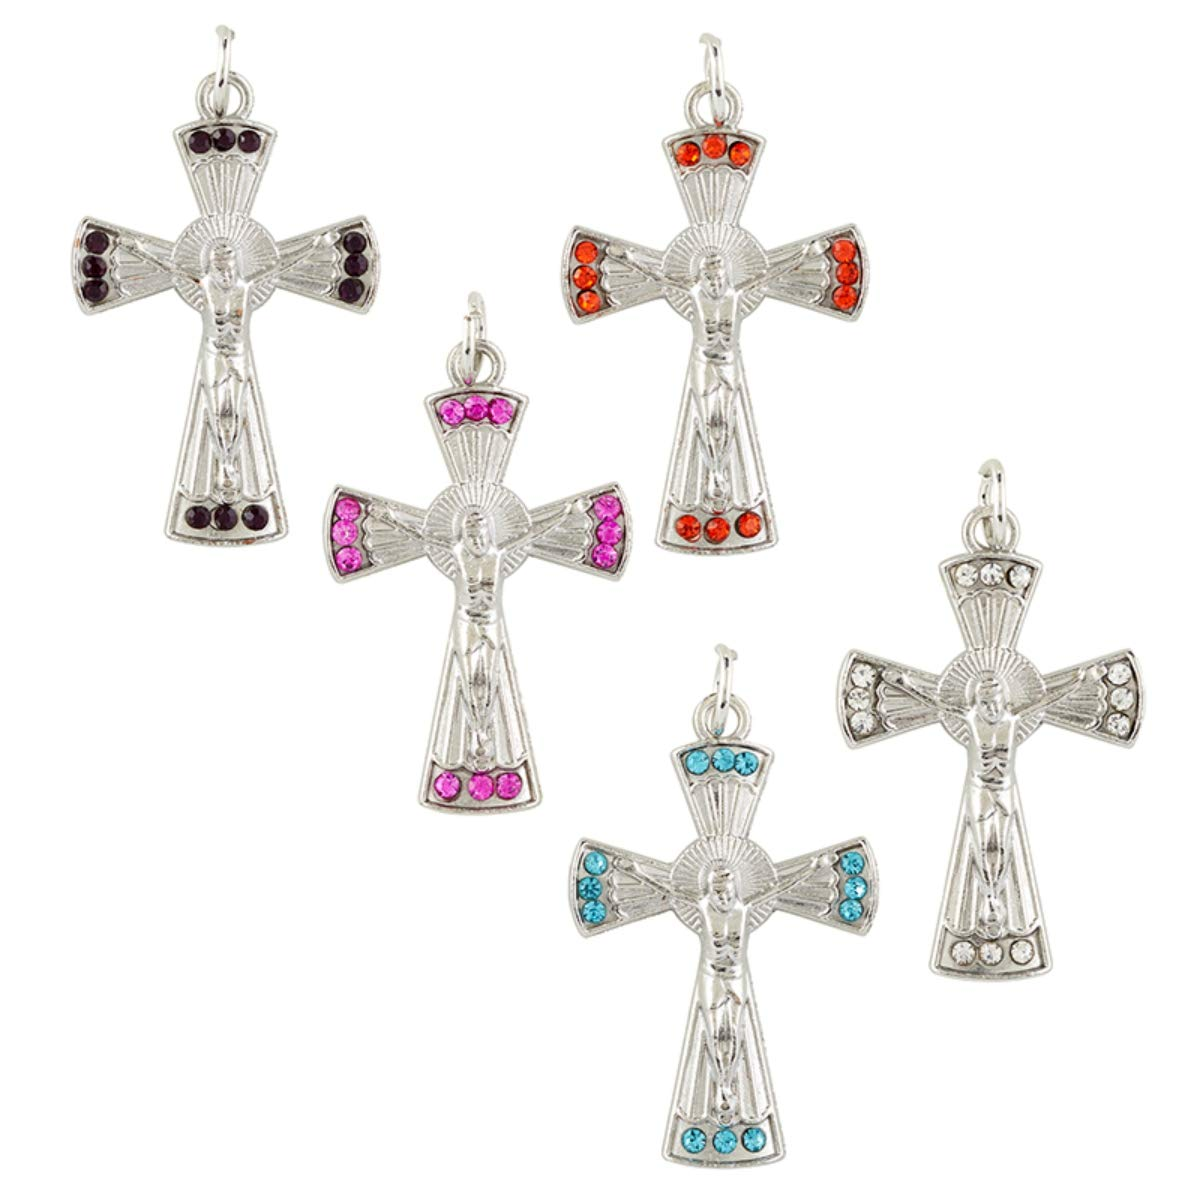 Assorted Color Glass Rhinestone Crucifix Pendants 1 3 8 Inch Set Of 5 Amazon In Home Kitchen